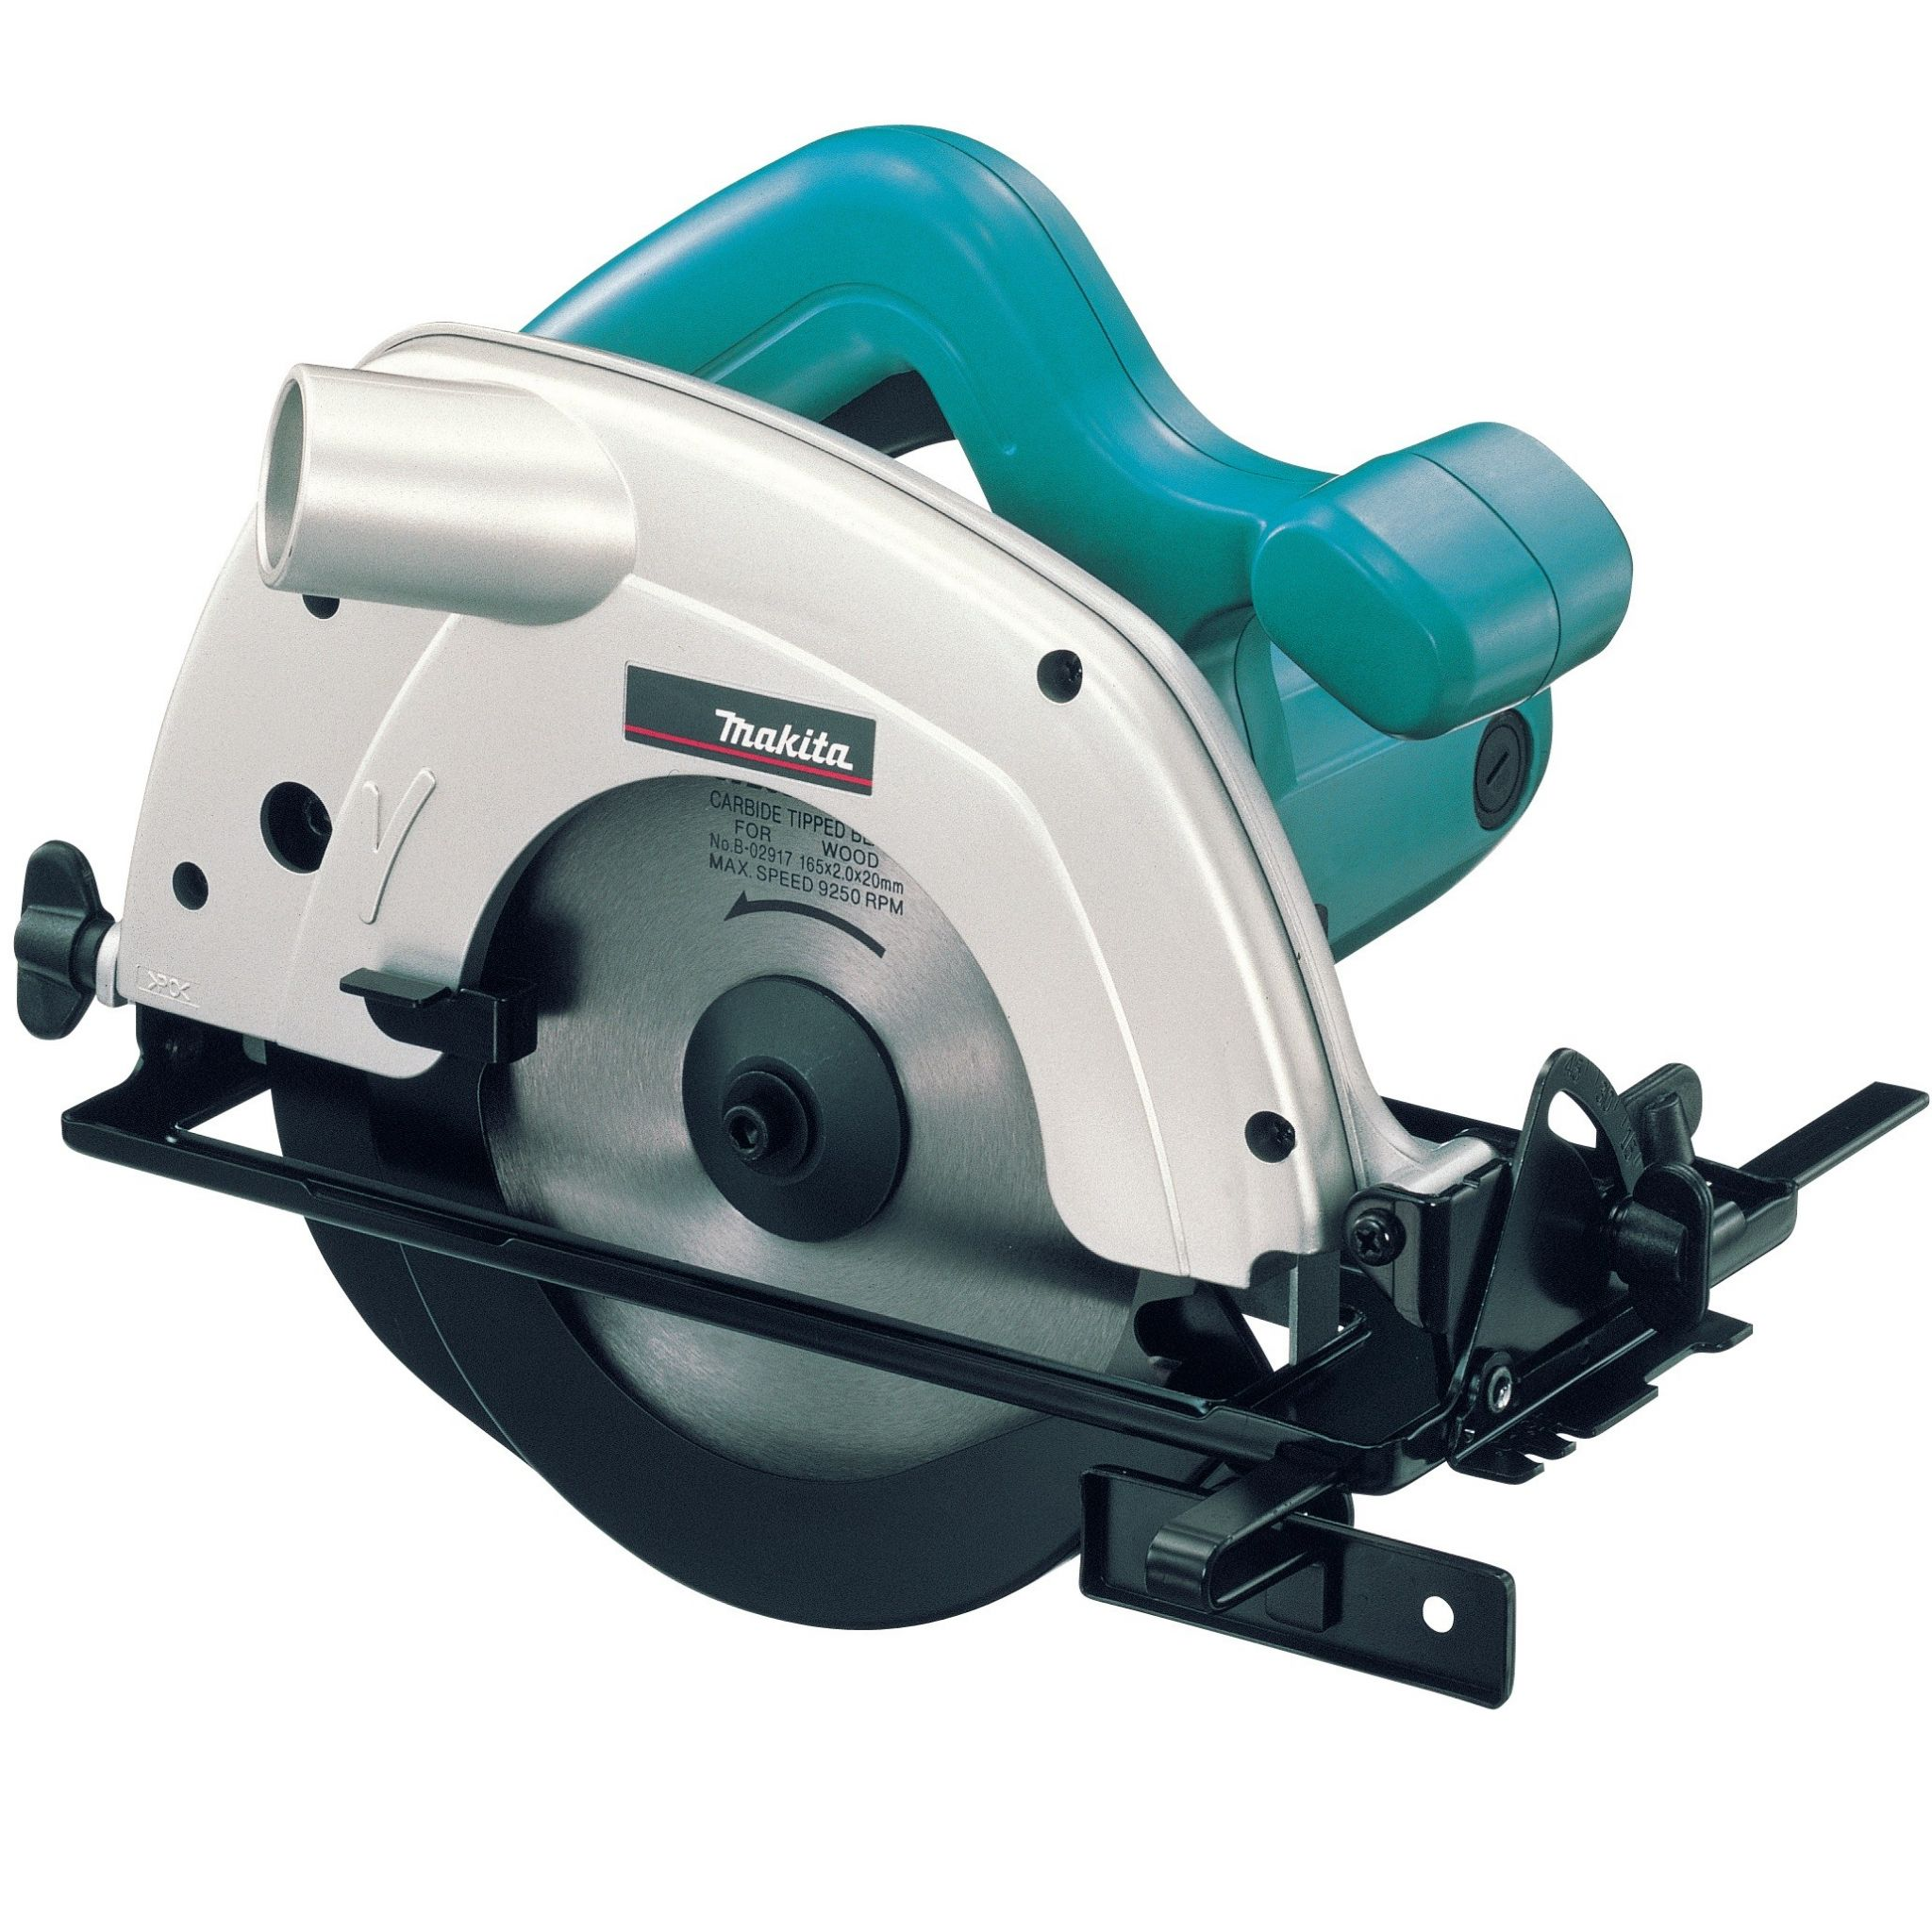 makita circular saw 5007nb manual